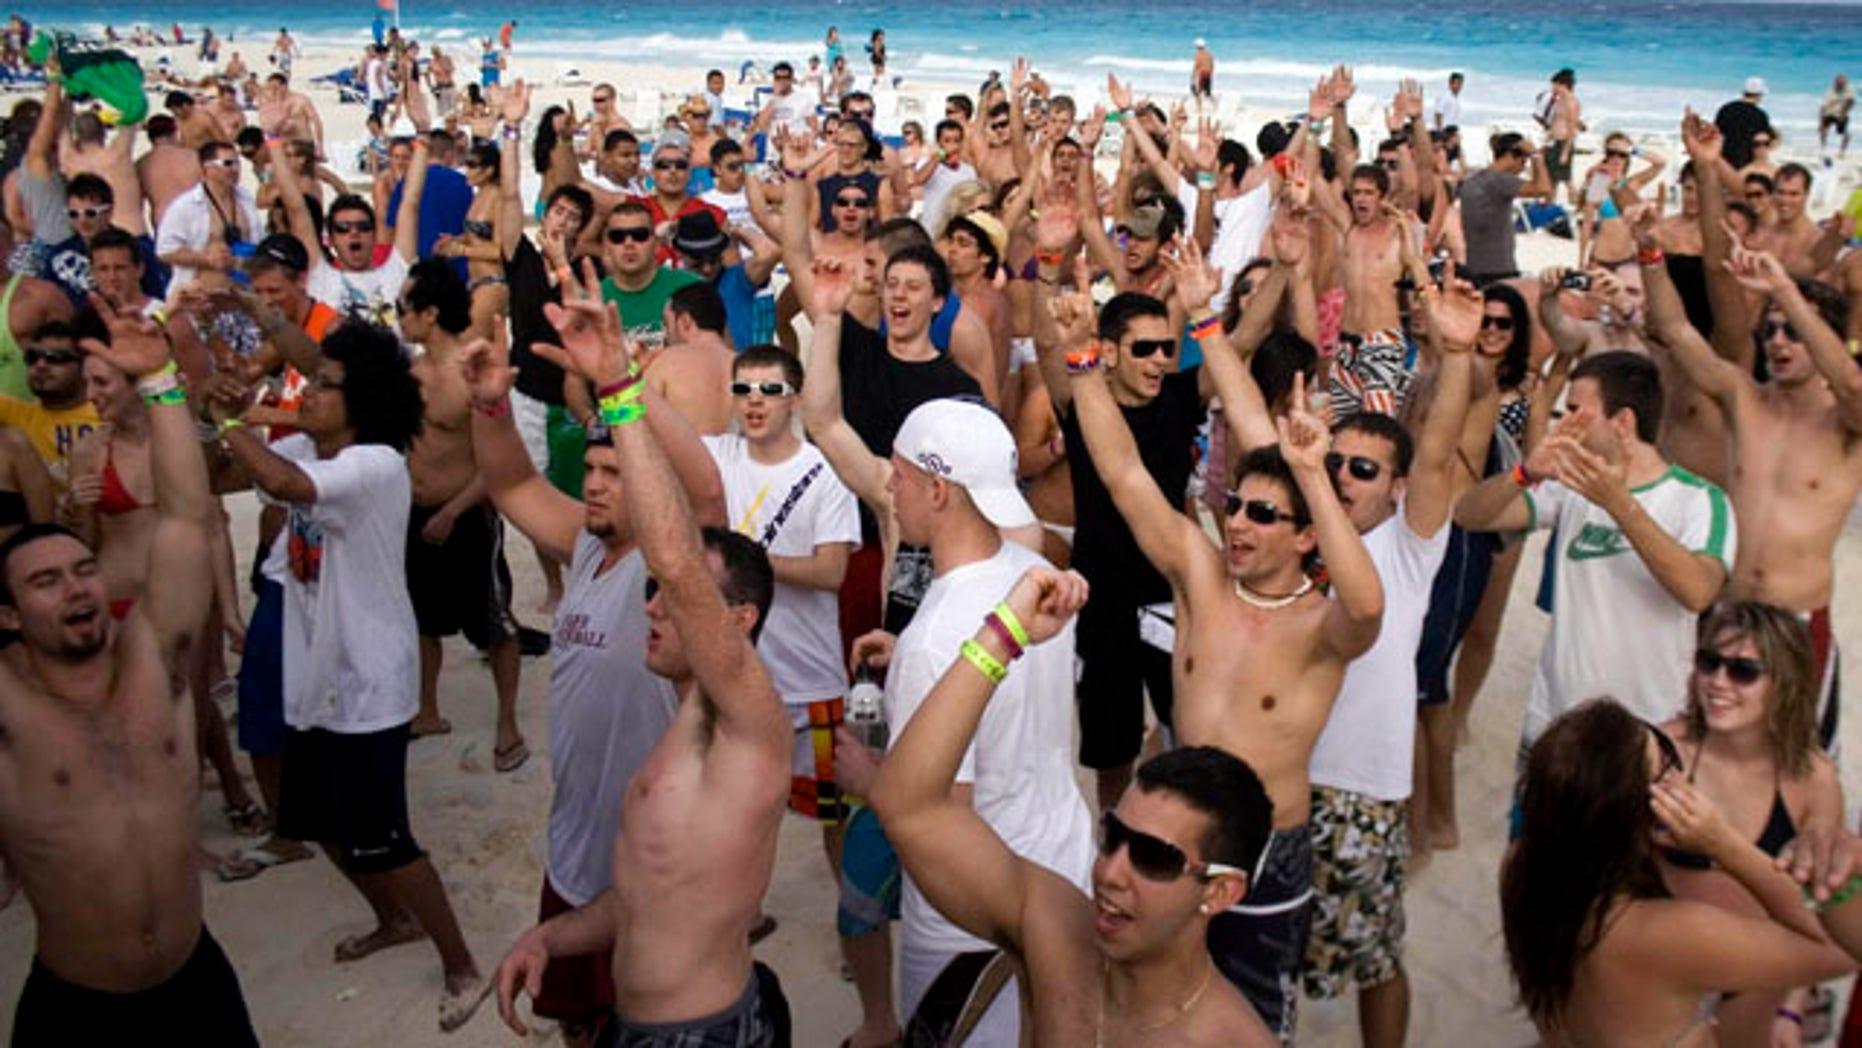 This Monday, March 1, 2010 file photo shows students on spring break cheering at the beach in the resort city of Cancun, Mexico.